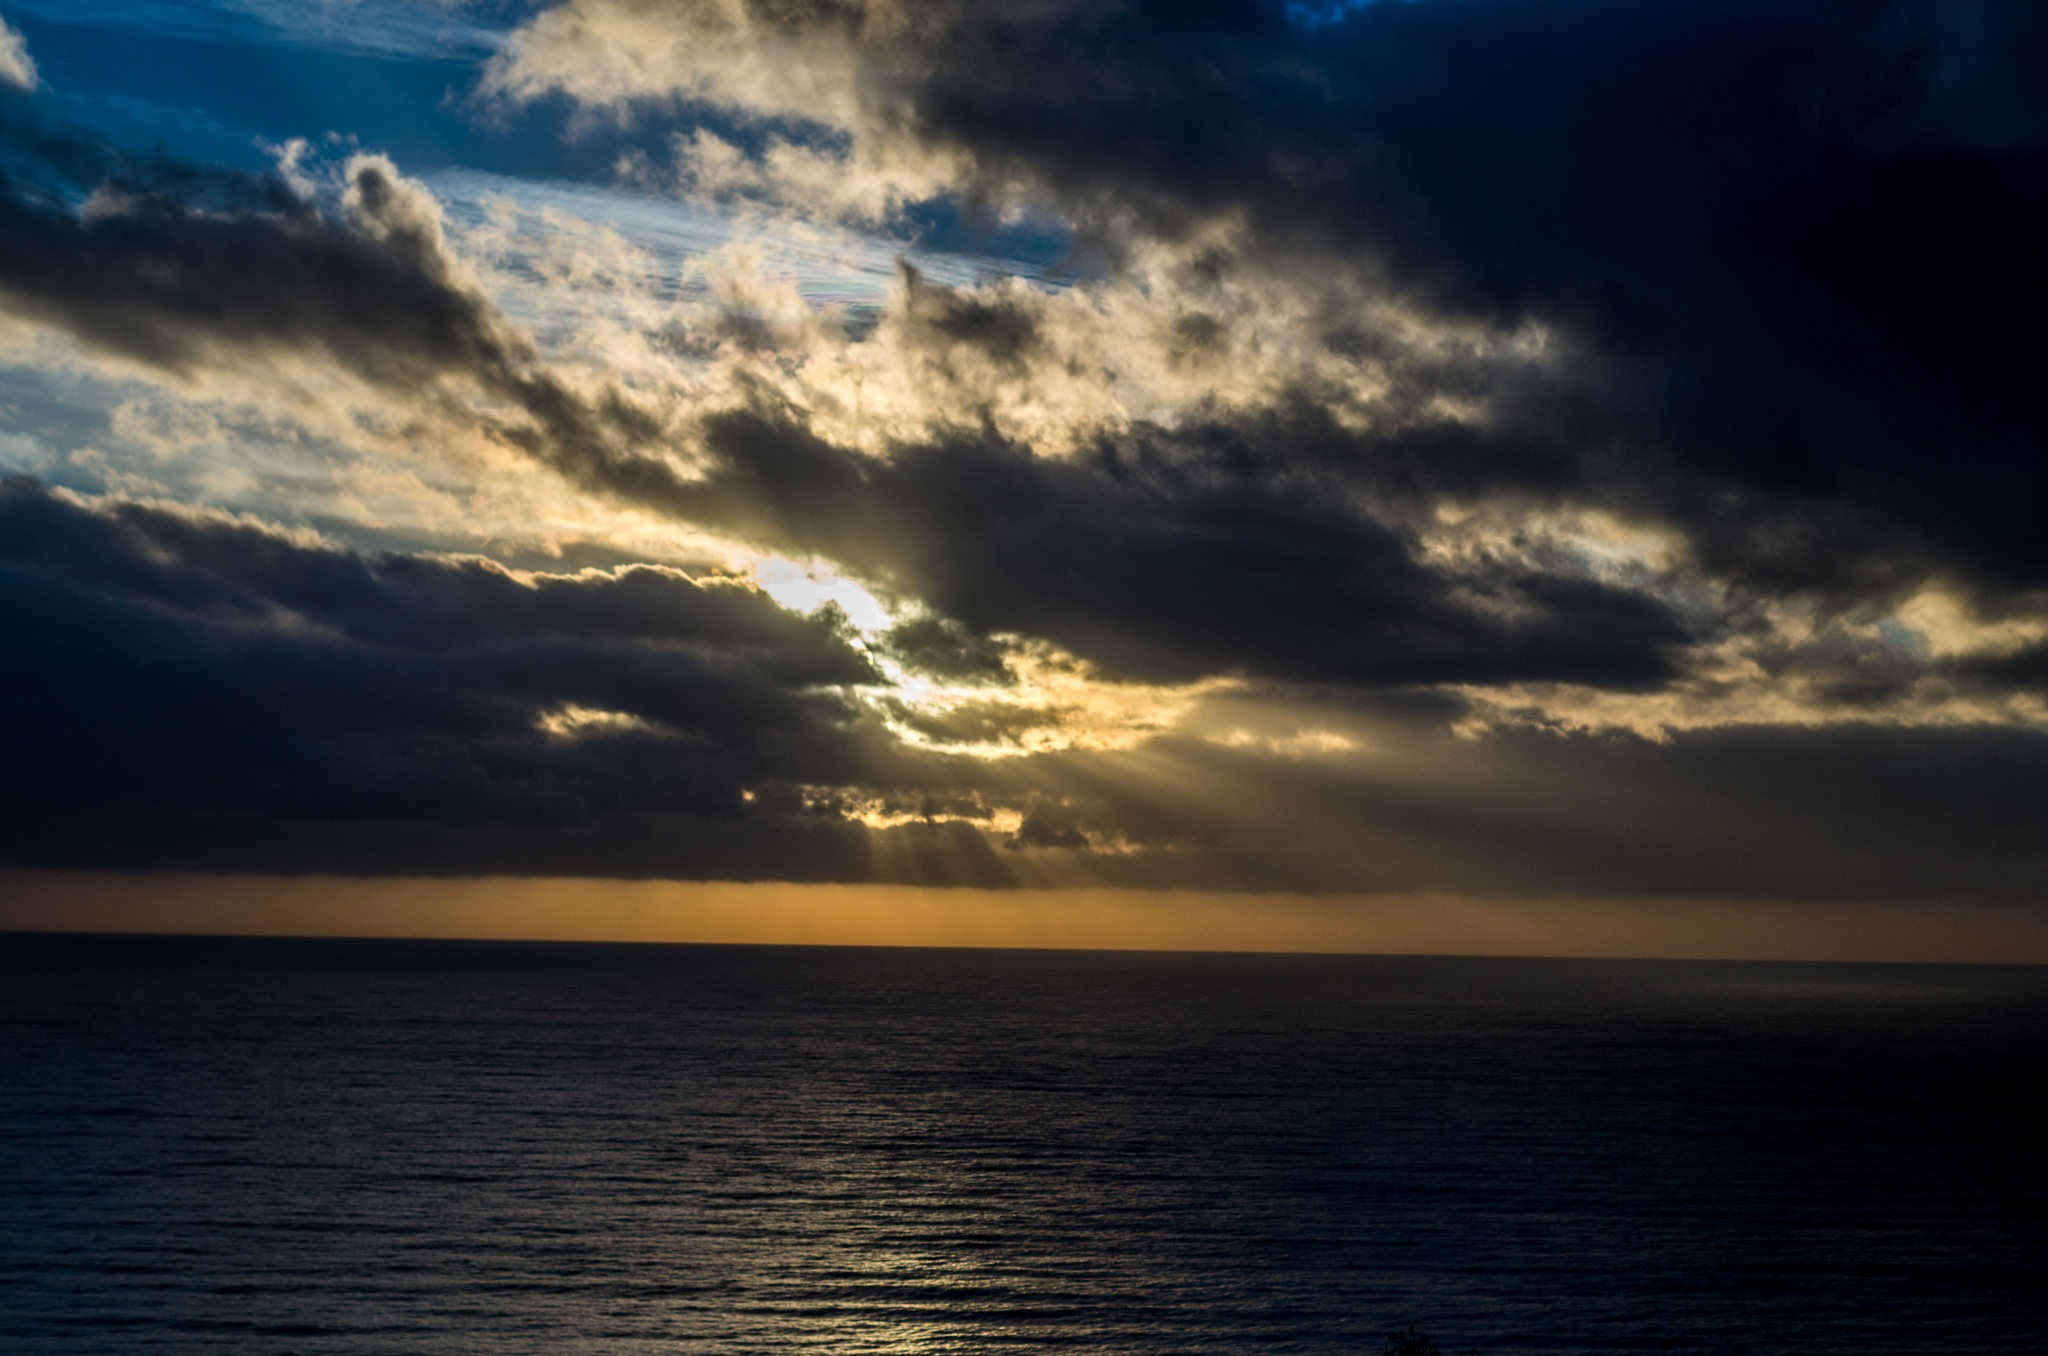 Ocean Sunset by ReaperScoob Photography